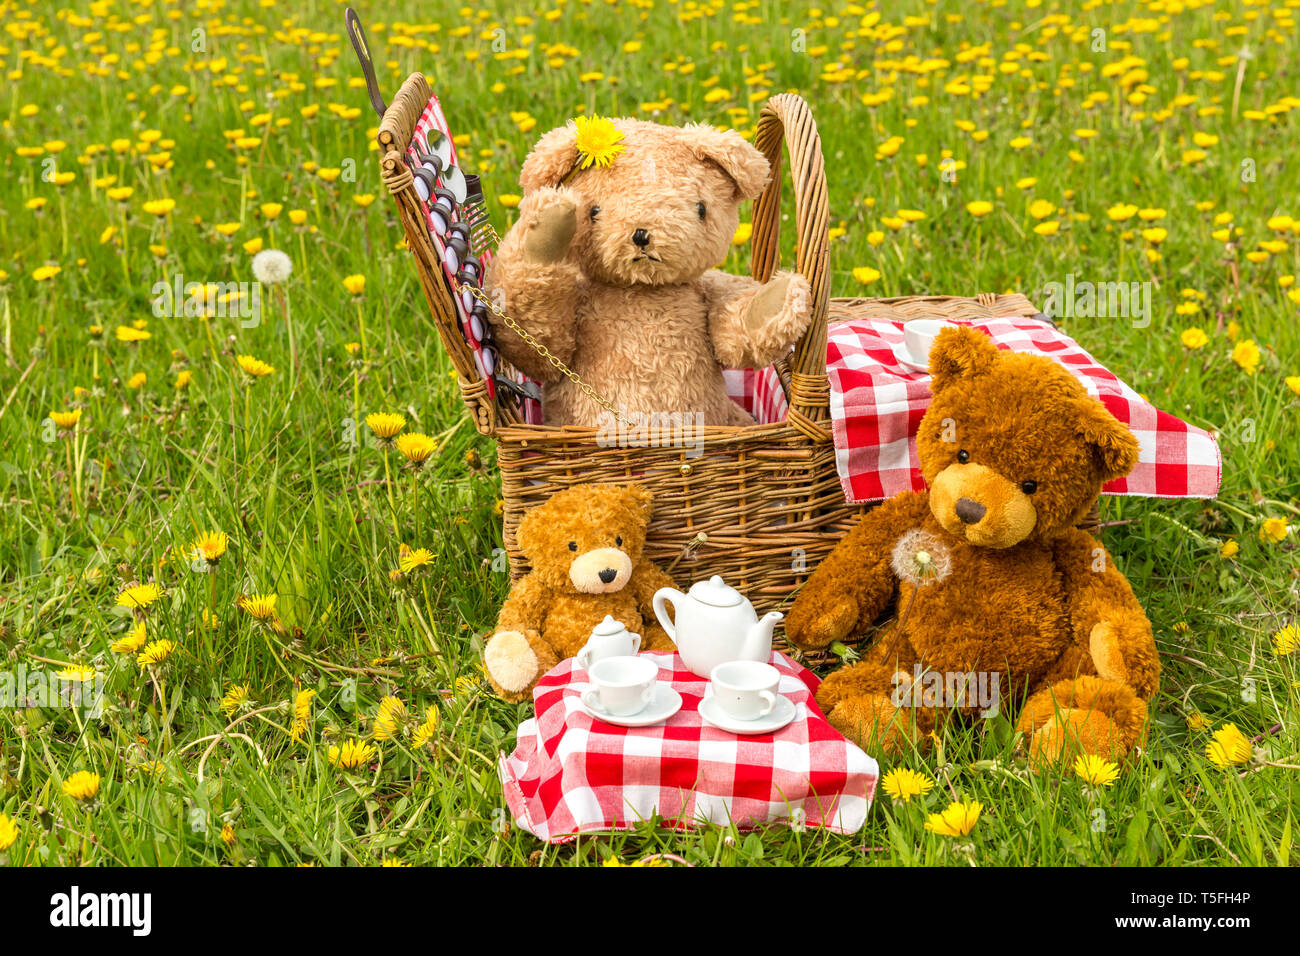 Teddy Bearu0027s Picnic With Bright Yellow Dandelions And Red ...